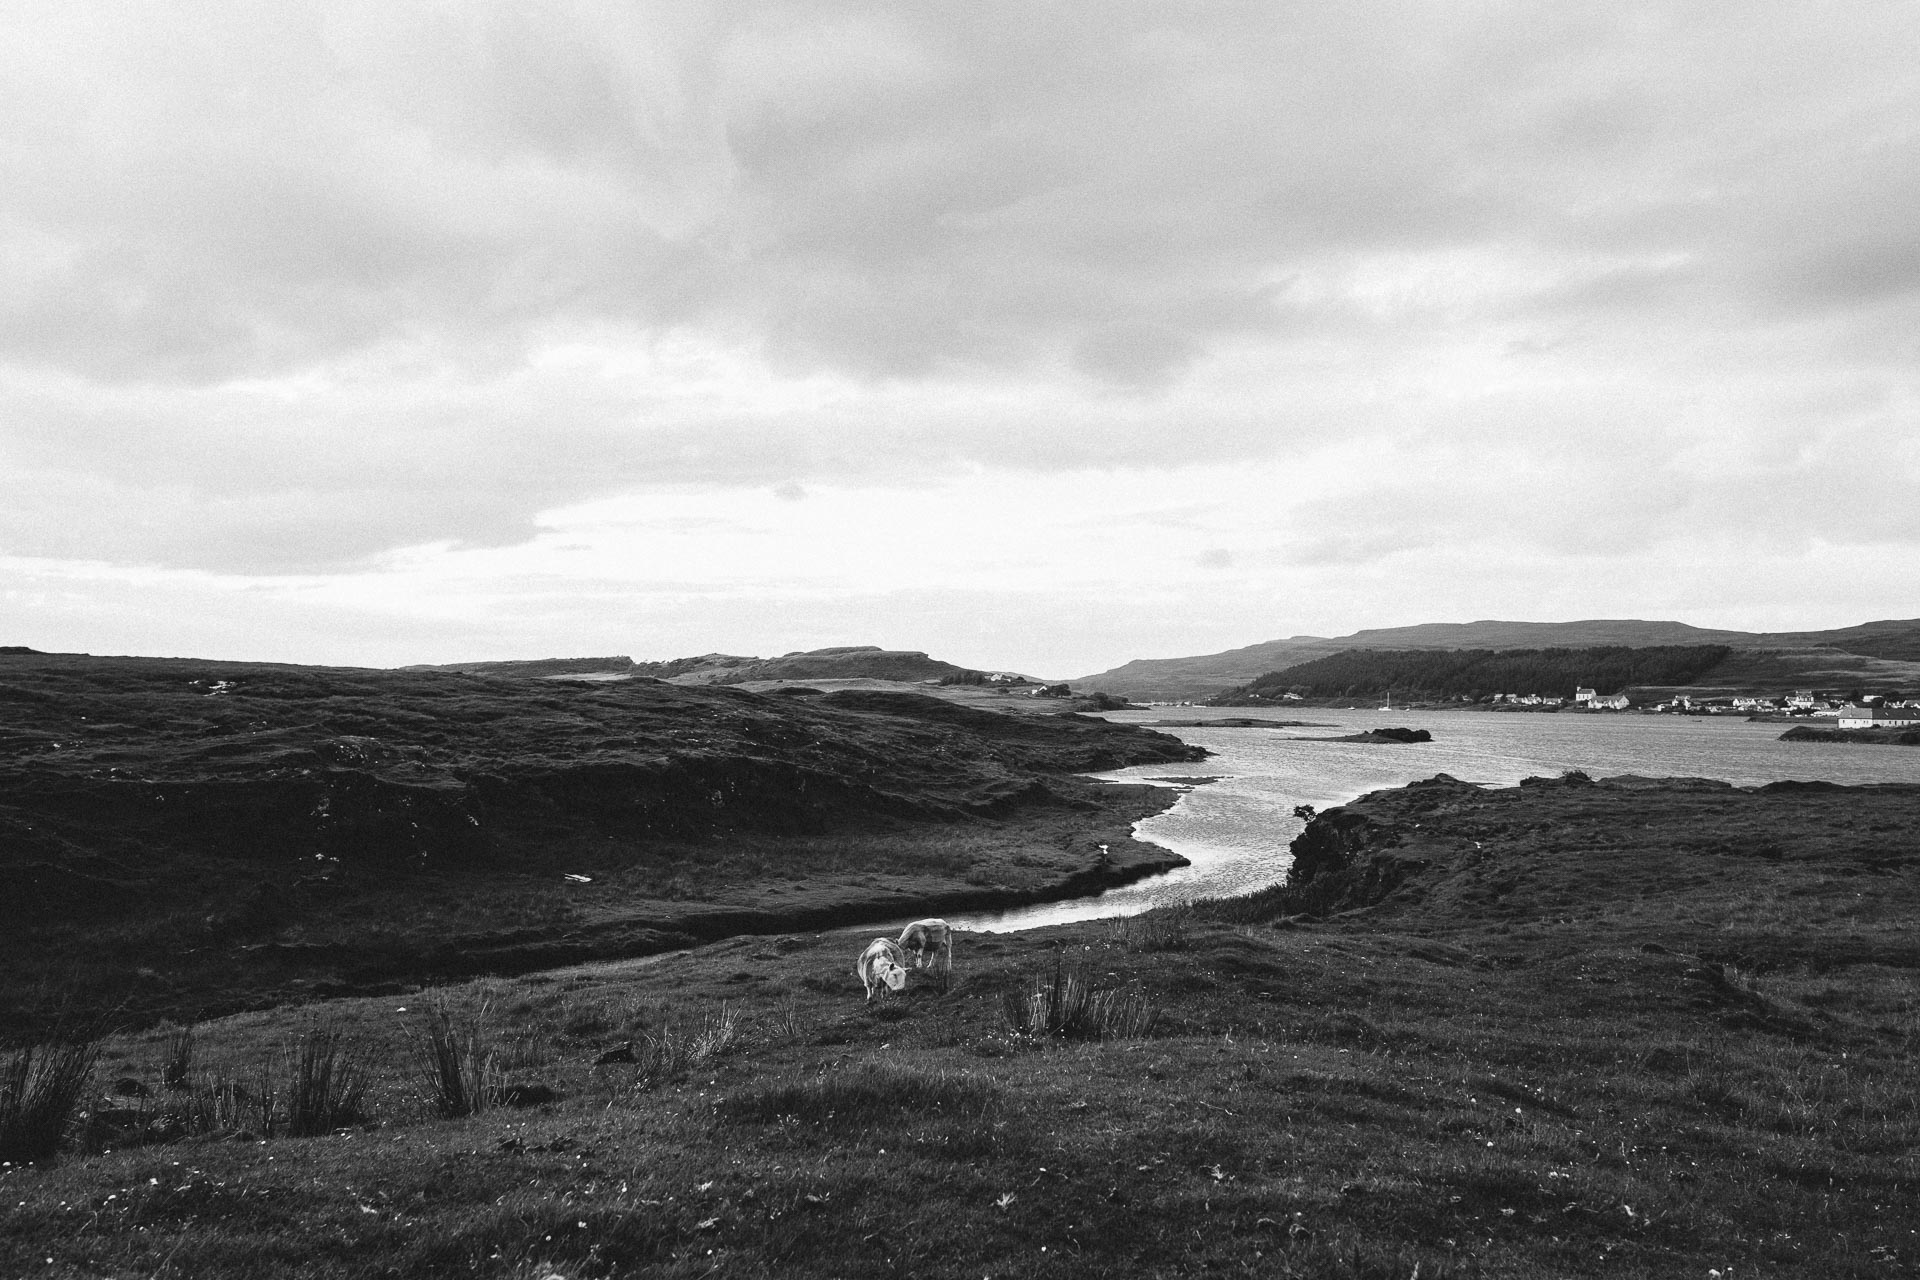 Megan_Matt_Elopement_IntimateWedding_Scotland_IsleOfSkye_JeanLaurentGaudy_108